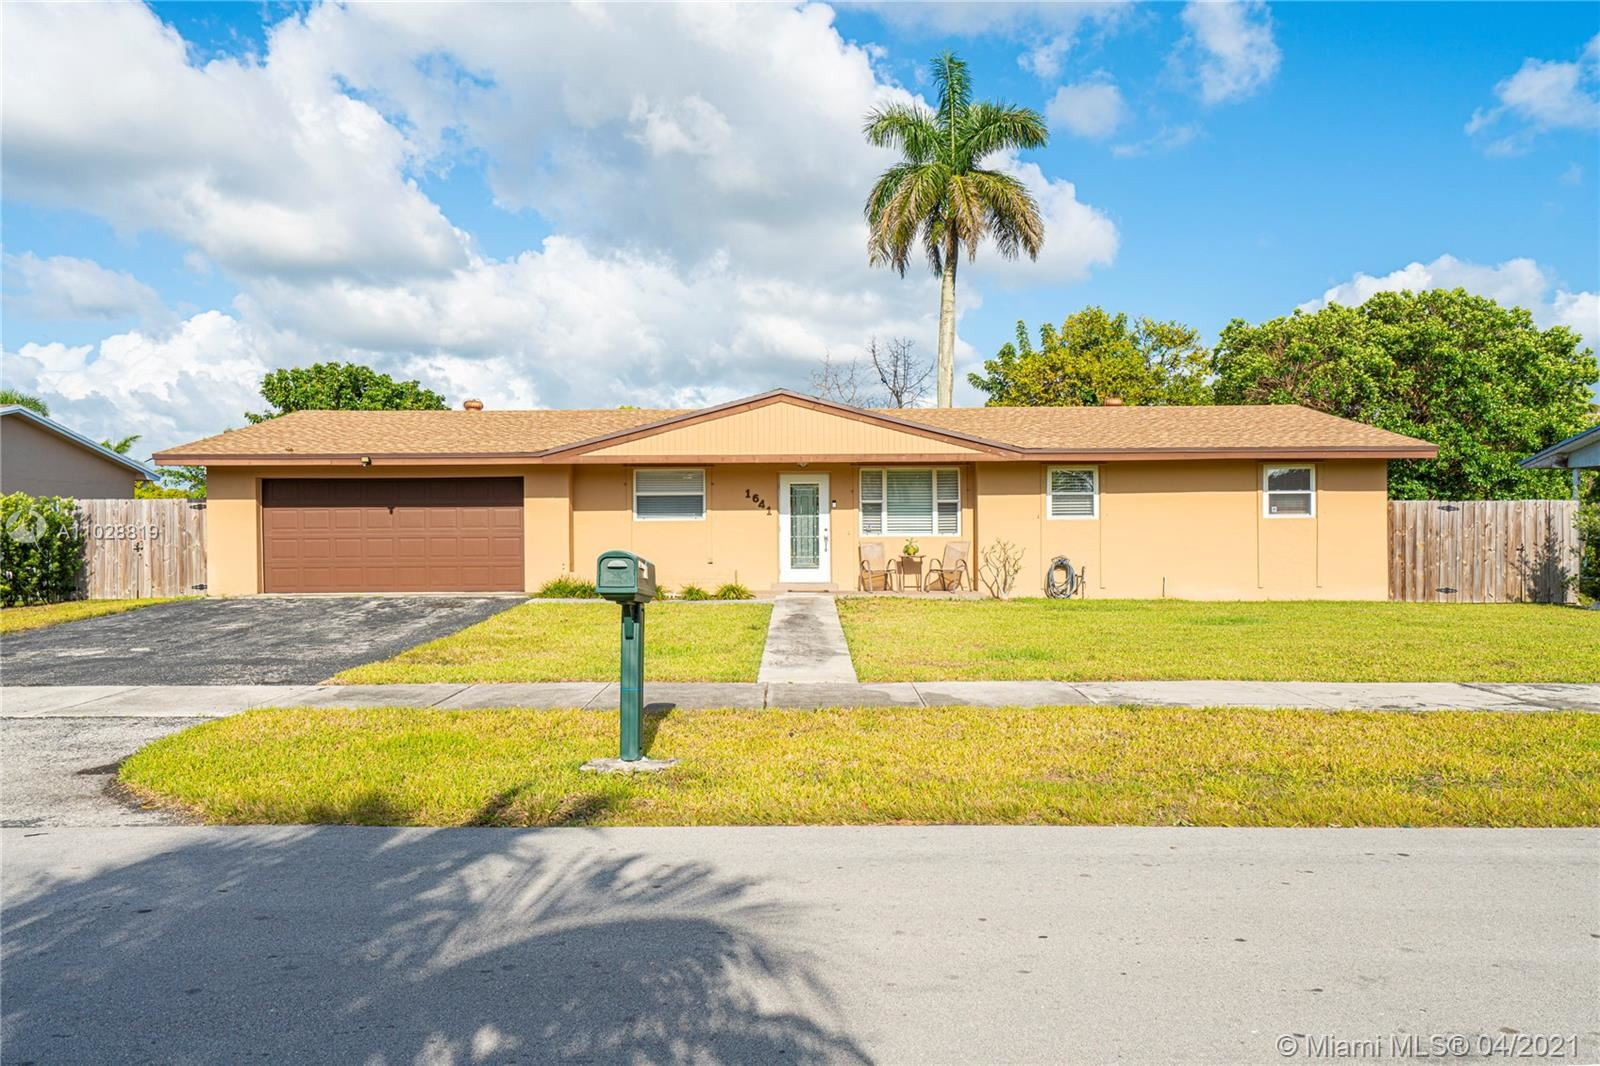 1641 NW 12th Ave, Homestead, FL 33030 - #: A11028819